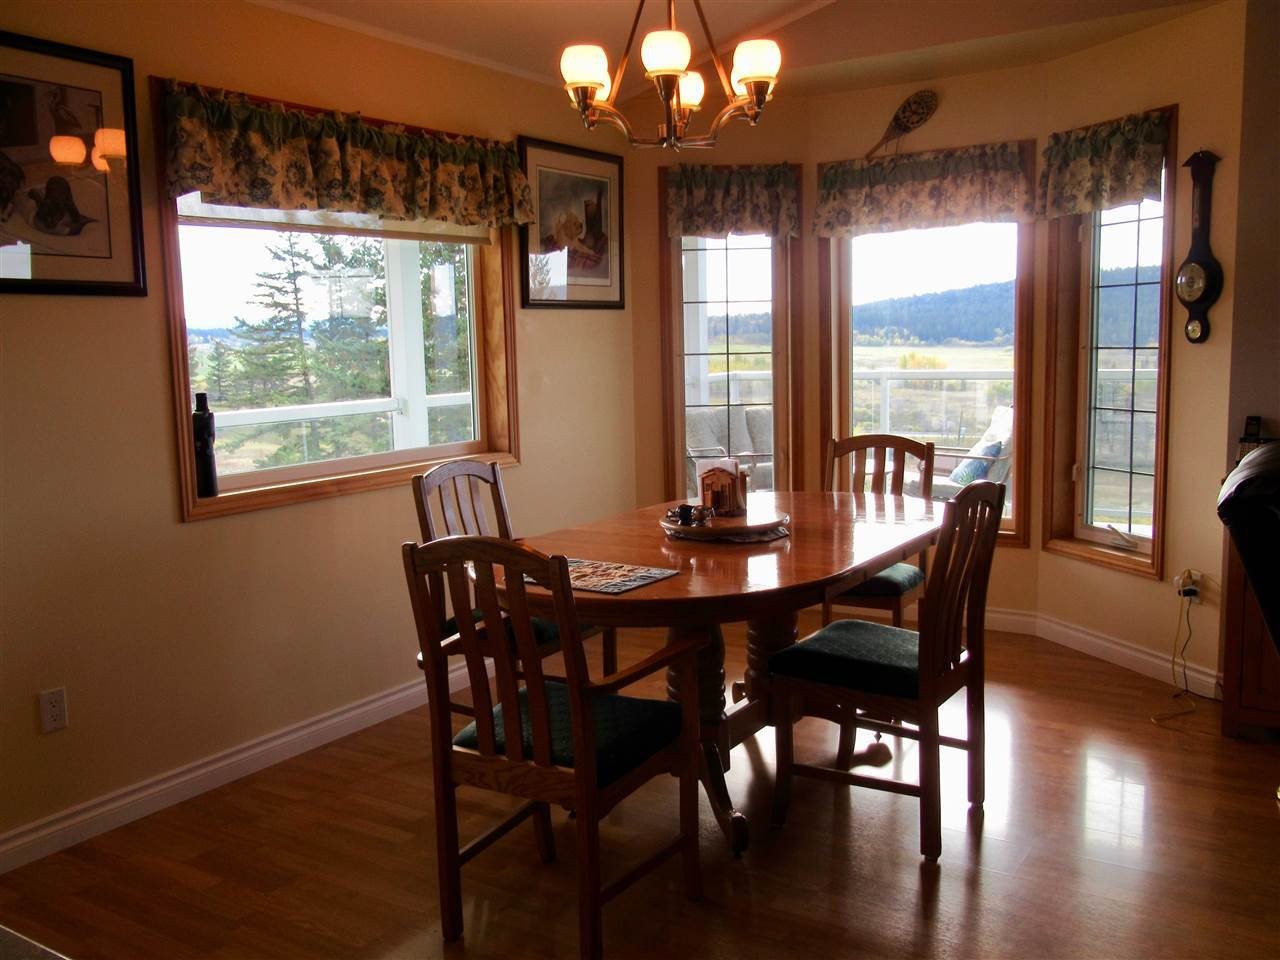 Photo 5: Photos: 2884 GOLD DIGGER Drive: 150 Mile House House for sale (Williams Lake (Zone 27))  : MLS®# R2409553